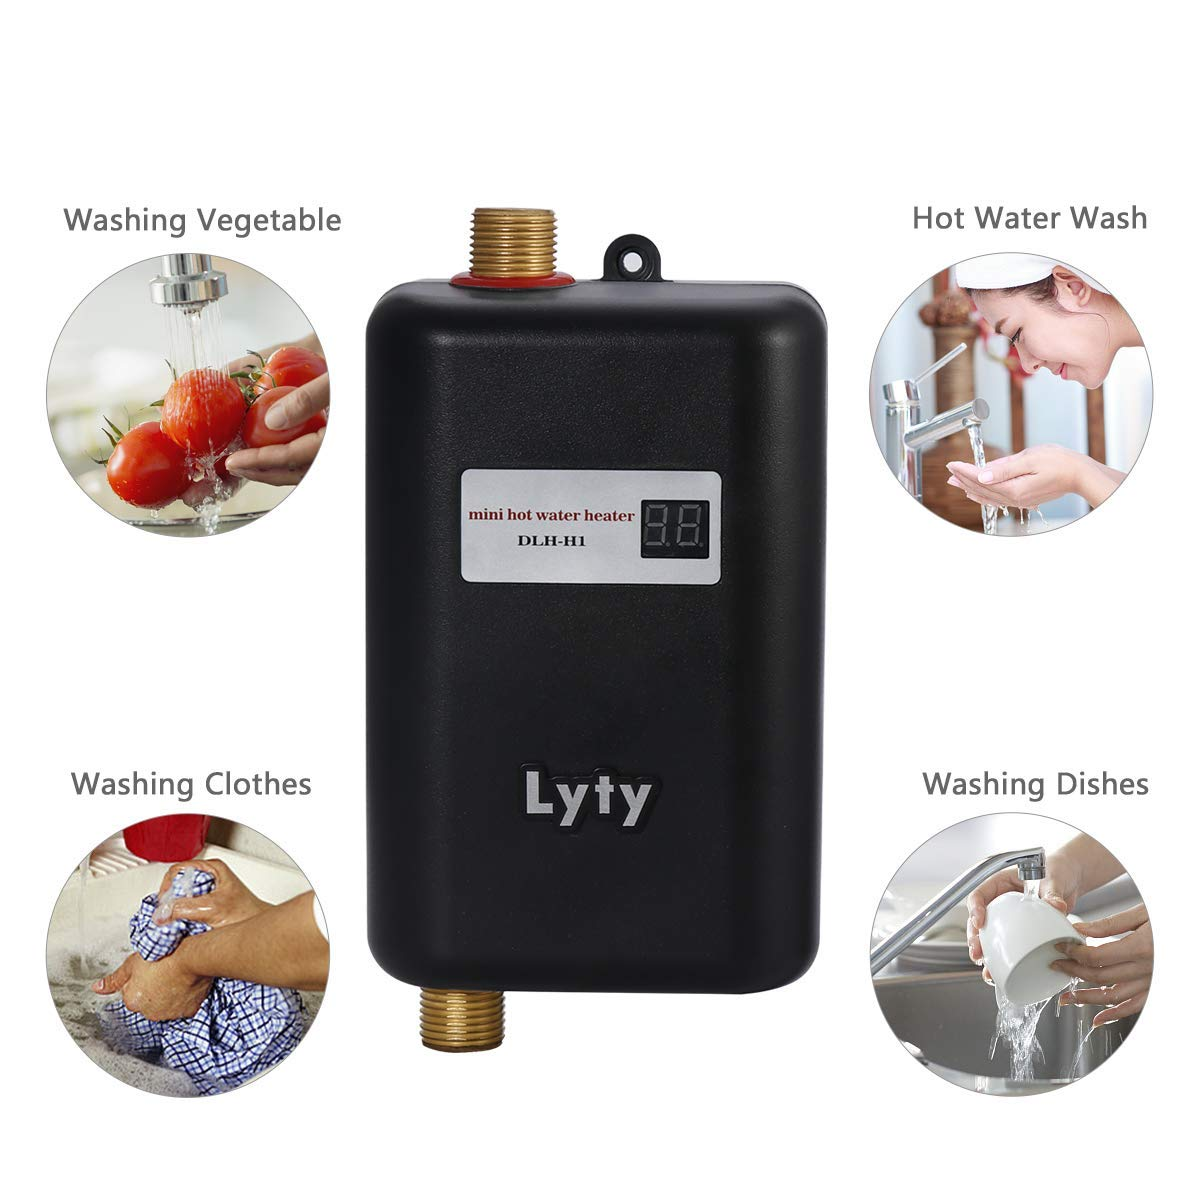 Mini Instant Water Heater Electric Under Sink - 3kW at 110v 120v Tankless Hot Water Heater for Hand/Face/Dishes Washing Kitchen Bathroom(Designed for Low Water Flow Use Only)(Black) by Lyty (Image #3)